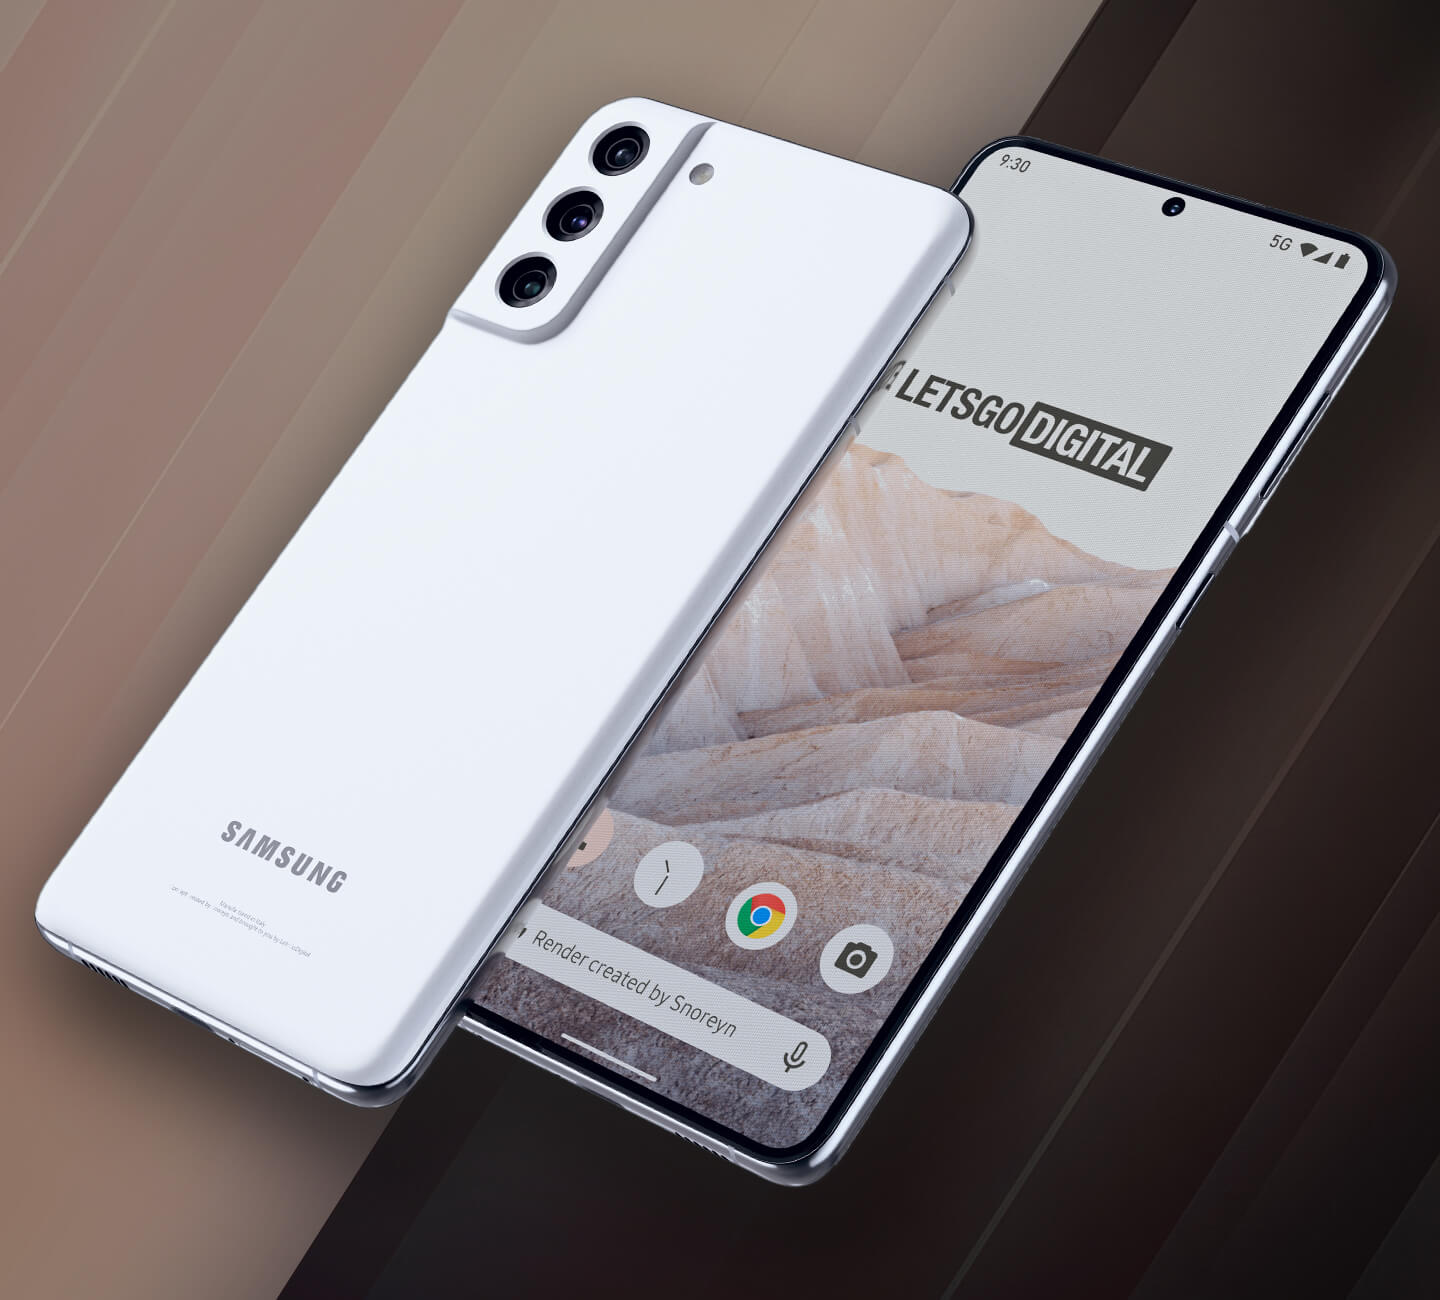 Samsung S21 FE release